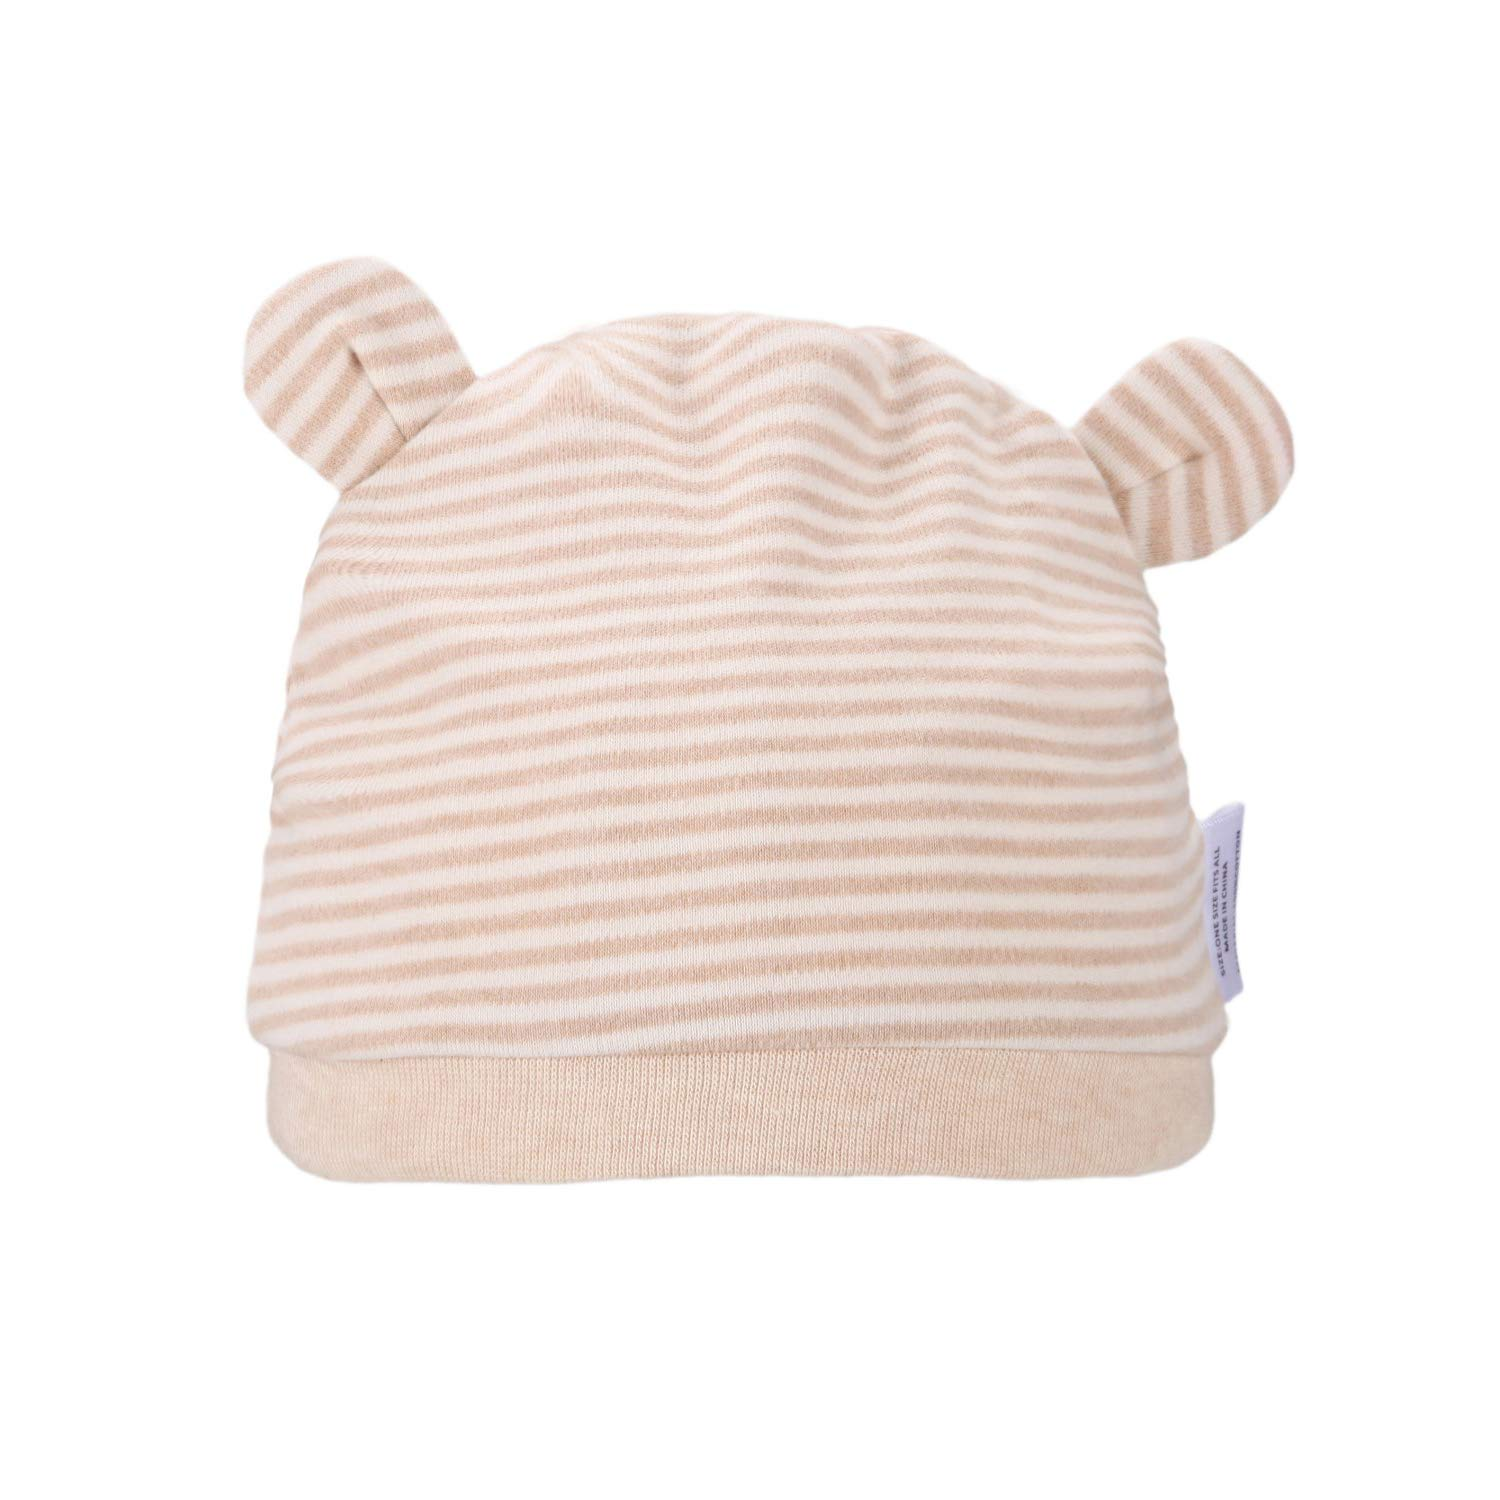 10399d08546 Folamer newborn hats organic cotton top knot beanies for months baby infant  cute soft and comfortable